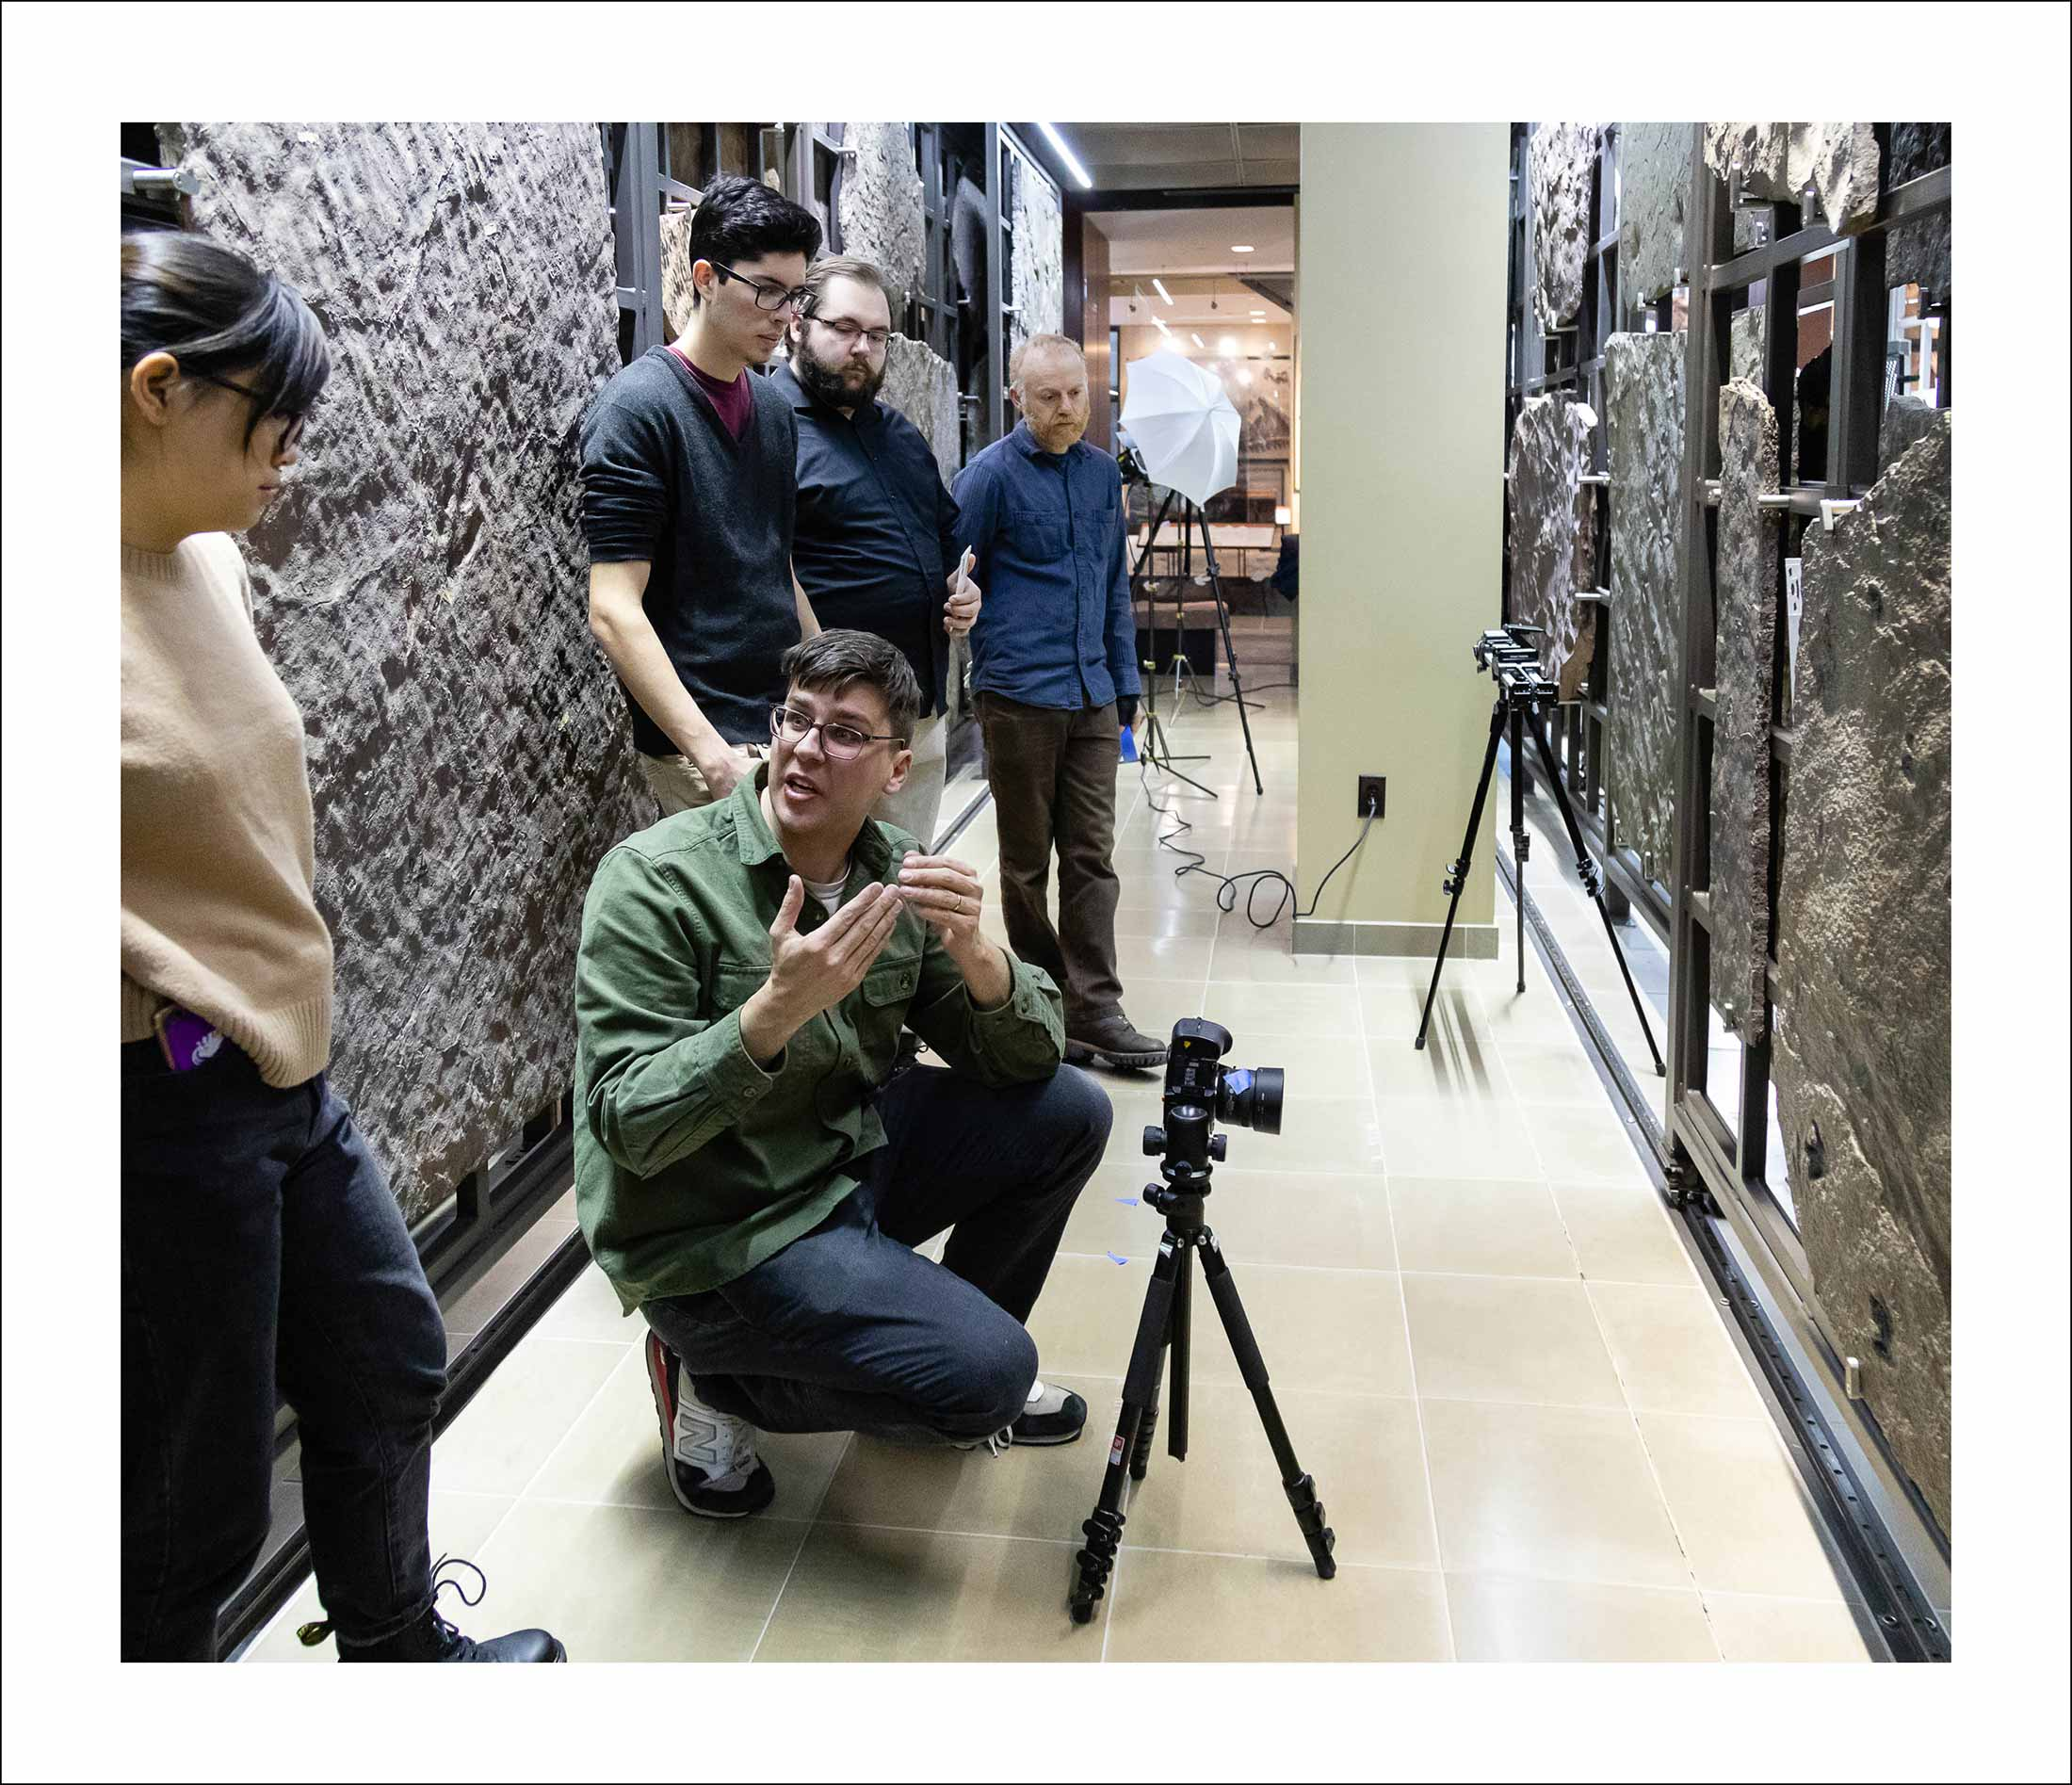 Four people in a hallway listen as a man talks, squatting in front of a camera on a tripod.